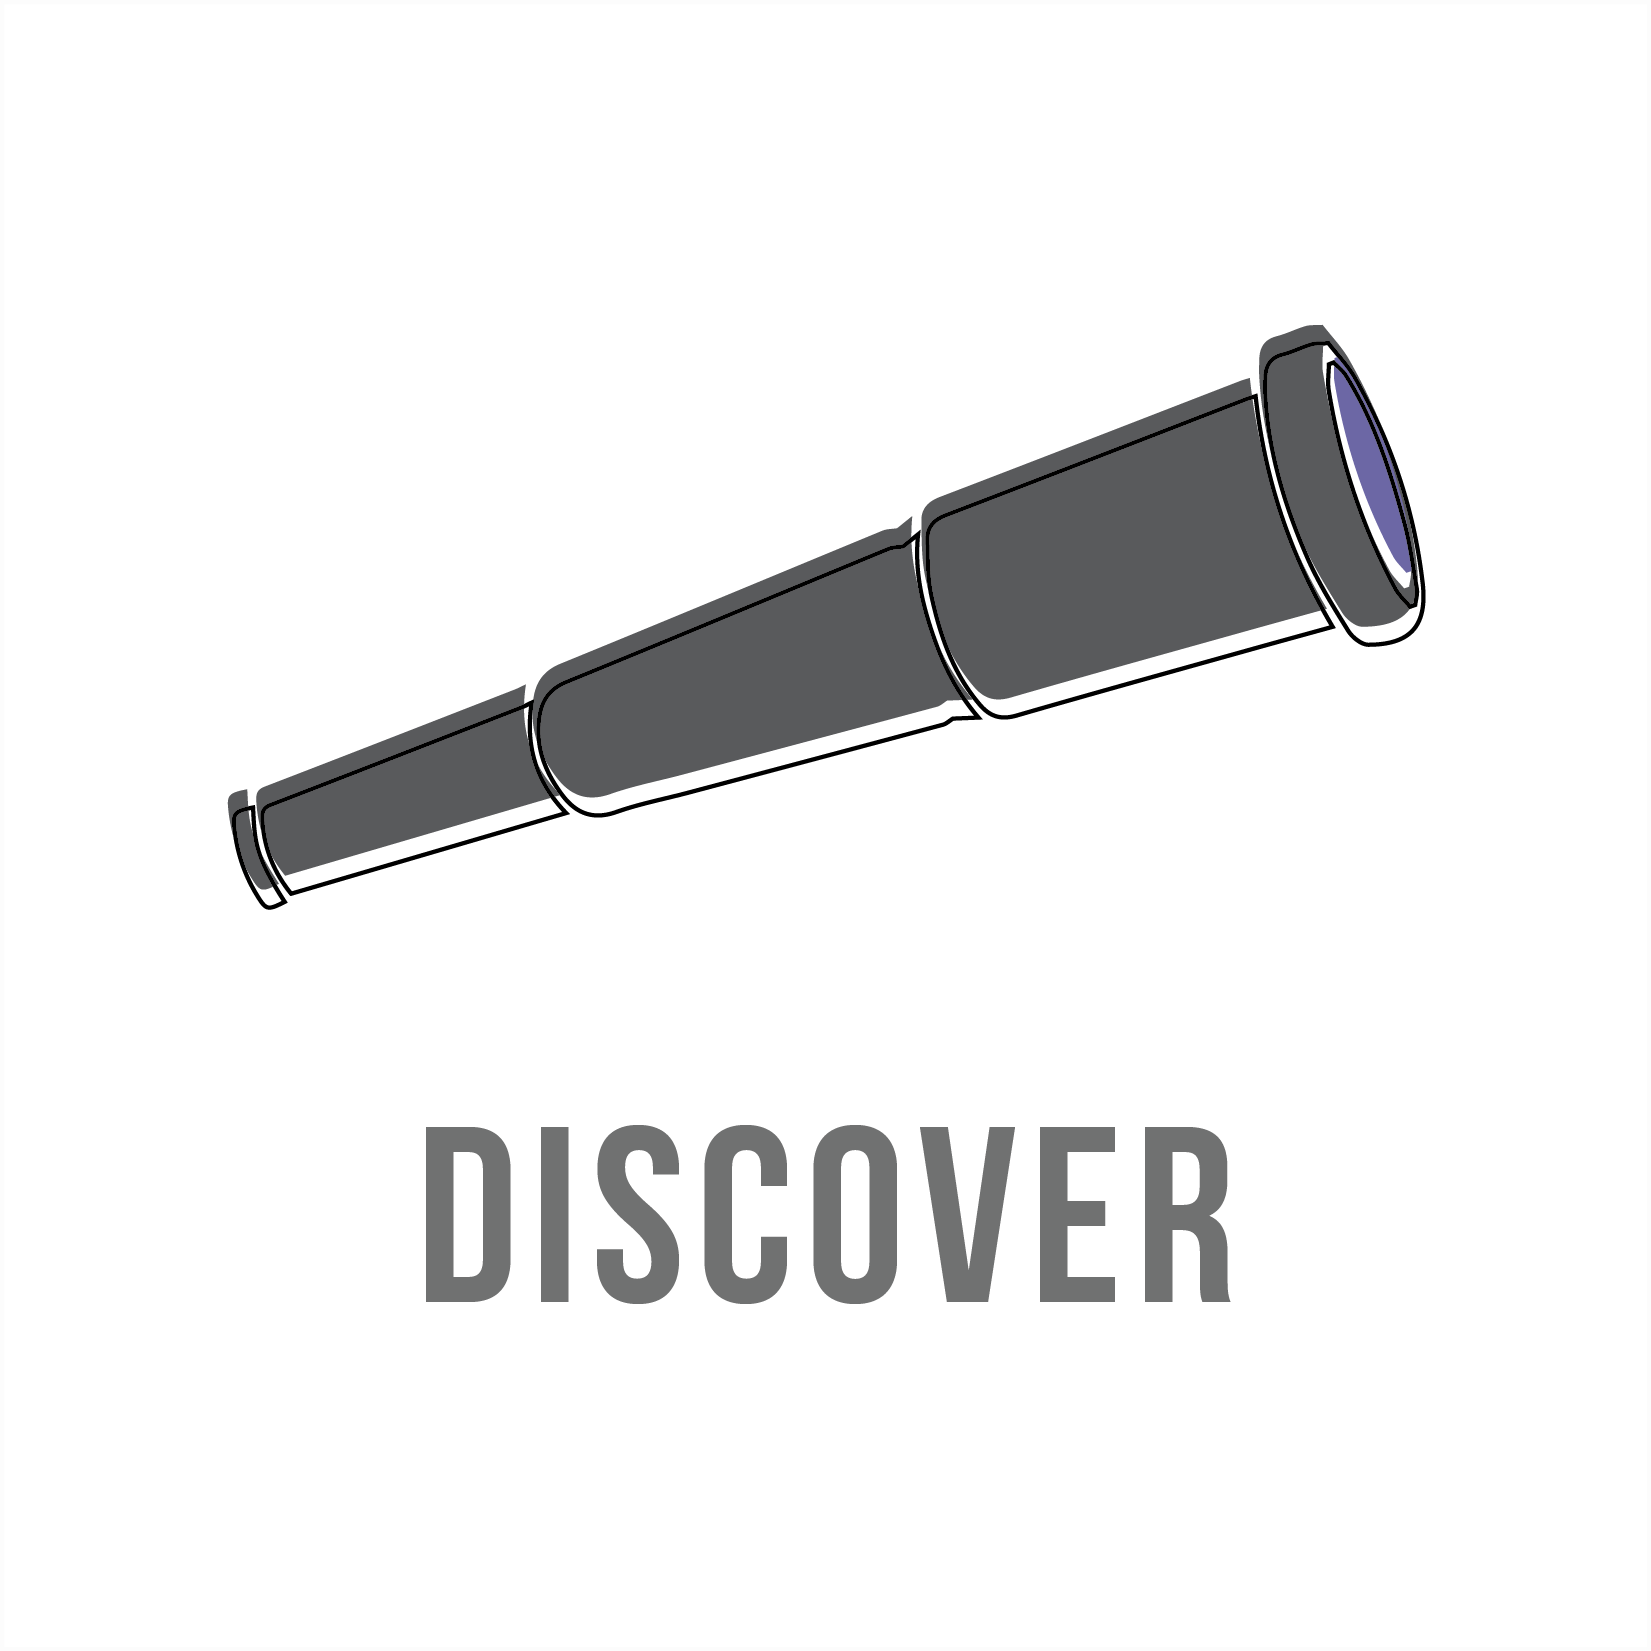 Design Icons_Discover_5.png